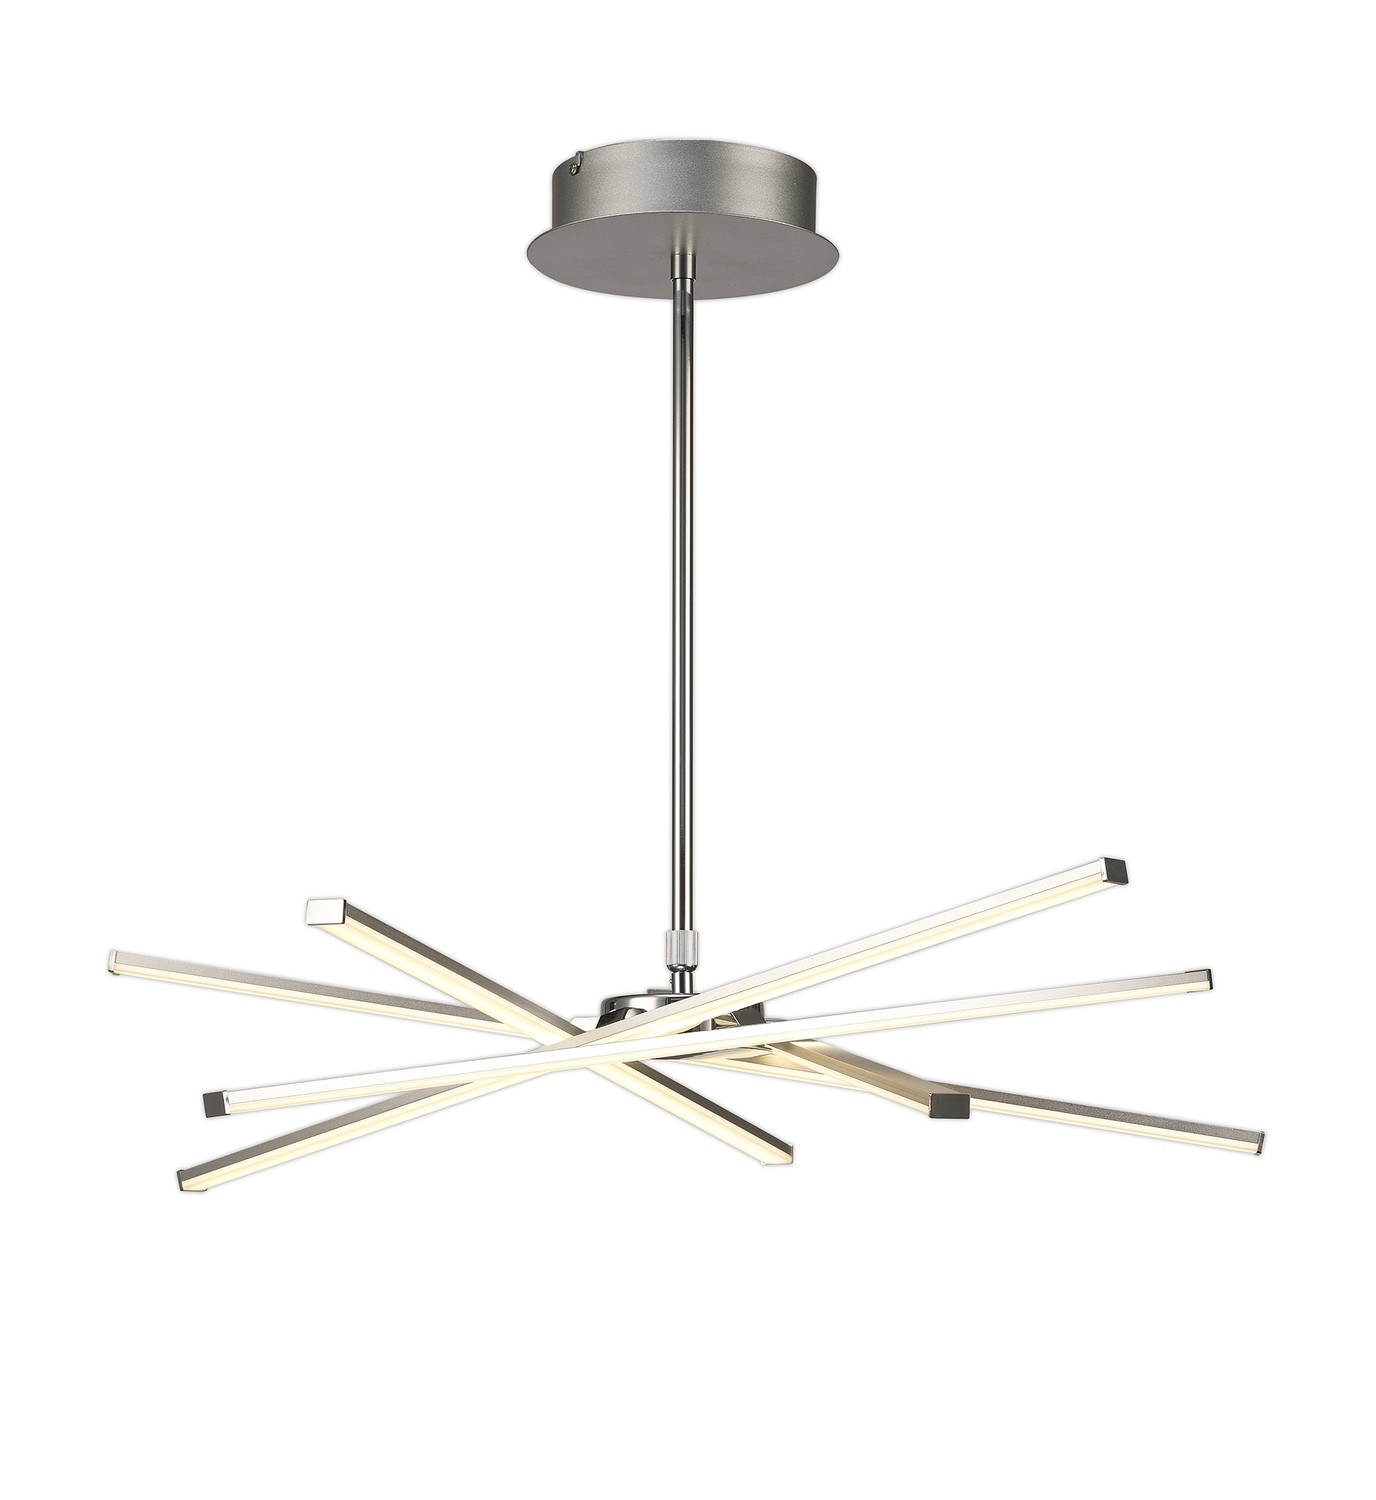 Star LED Pendant 69cm Round 42W 3000K, 3700lm, Dimmable Silver/Frosted Acrylic/Polished Chrome, 3yrs Warranty